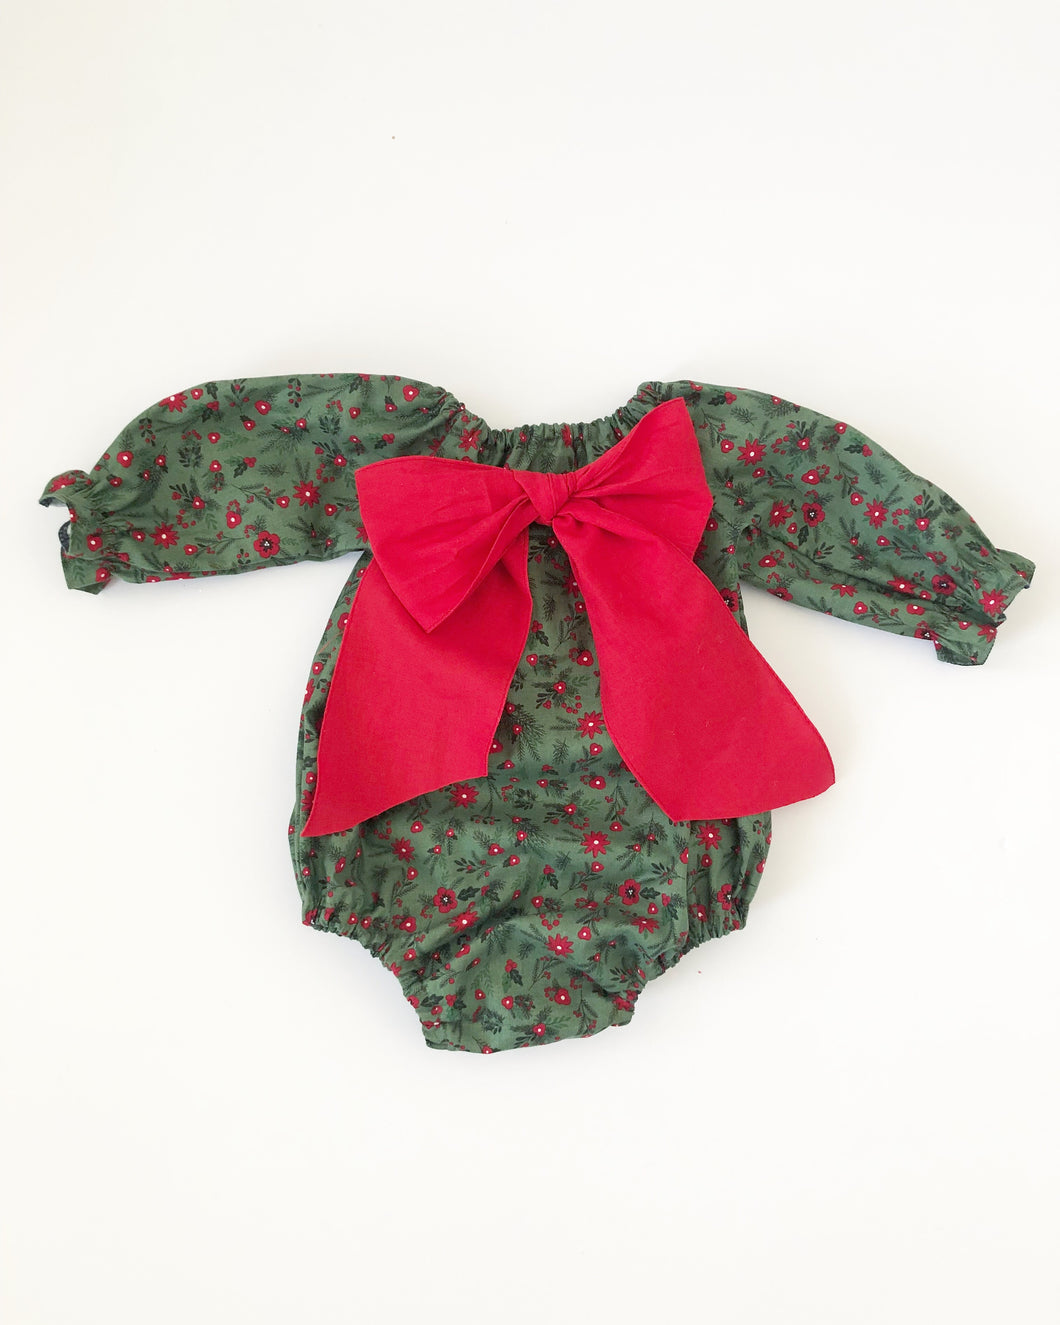 Marnie long sleeves big bow Christmas girl romper